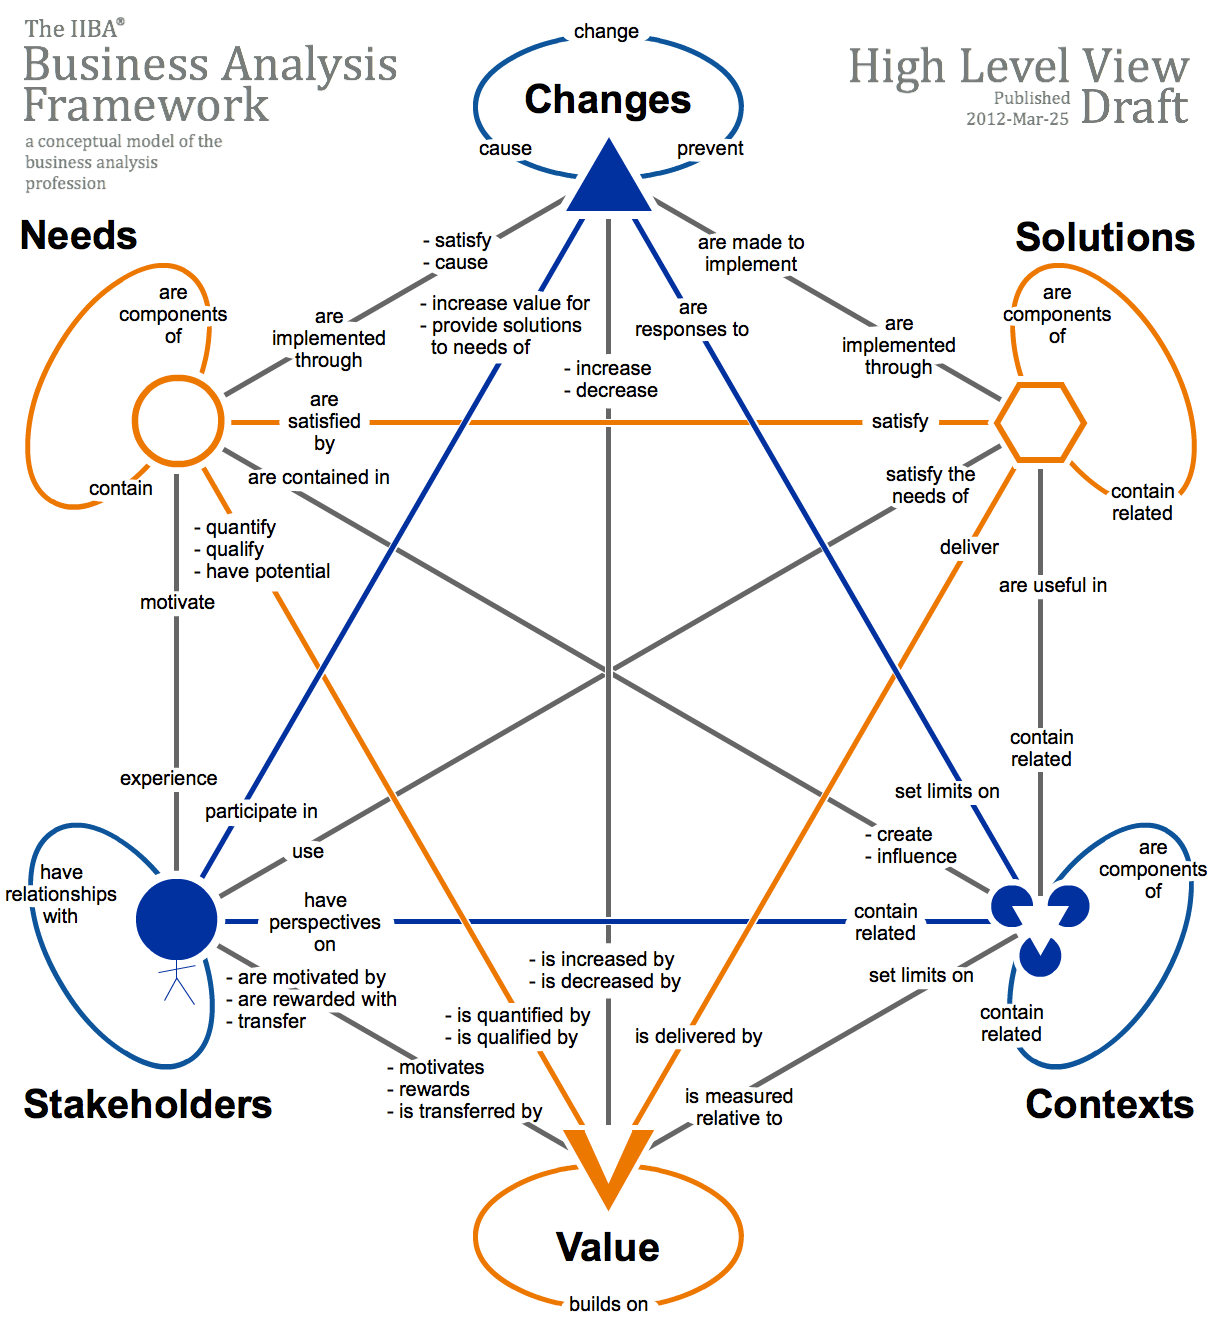 A system approach to apply the Business Analysis Framework Core Concepts